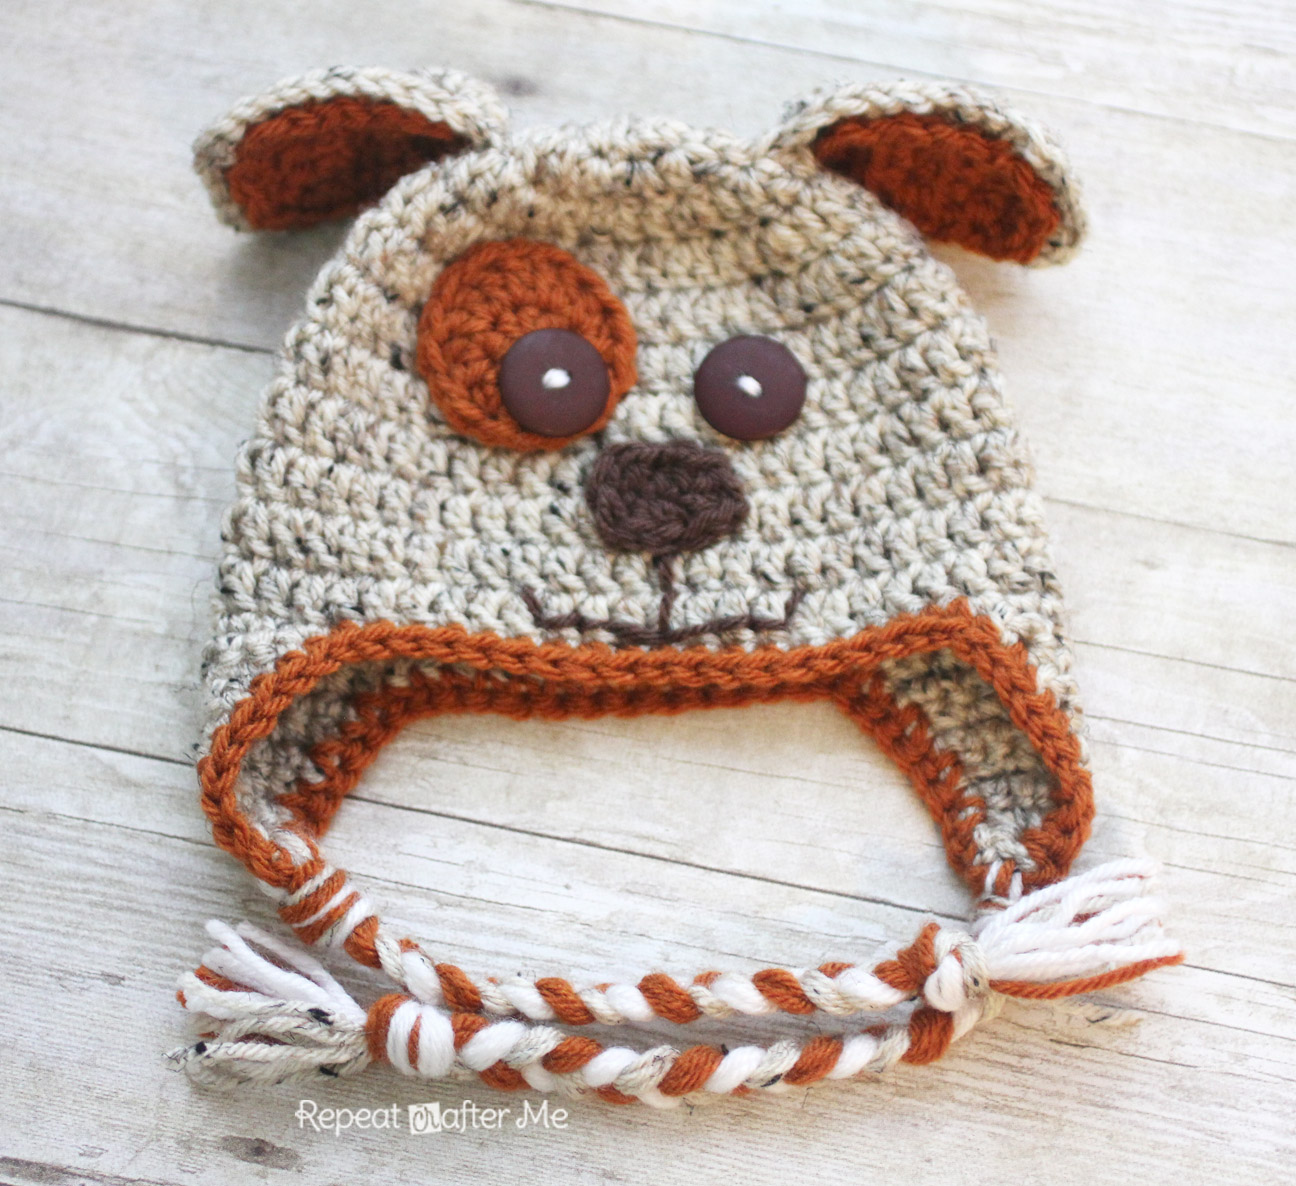 Crochet Me Free Patterns : Crochet Puppy Hat Pattern - Repeat Crafter Me